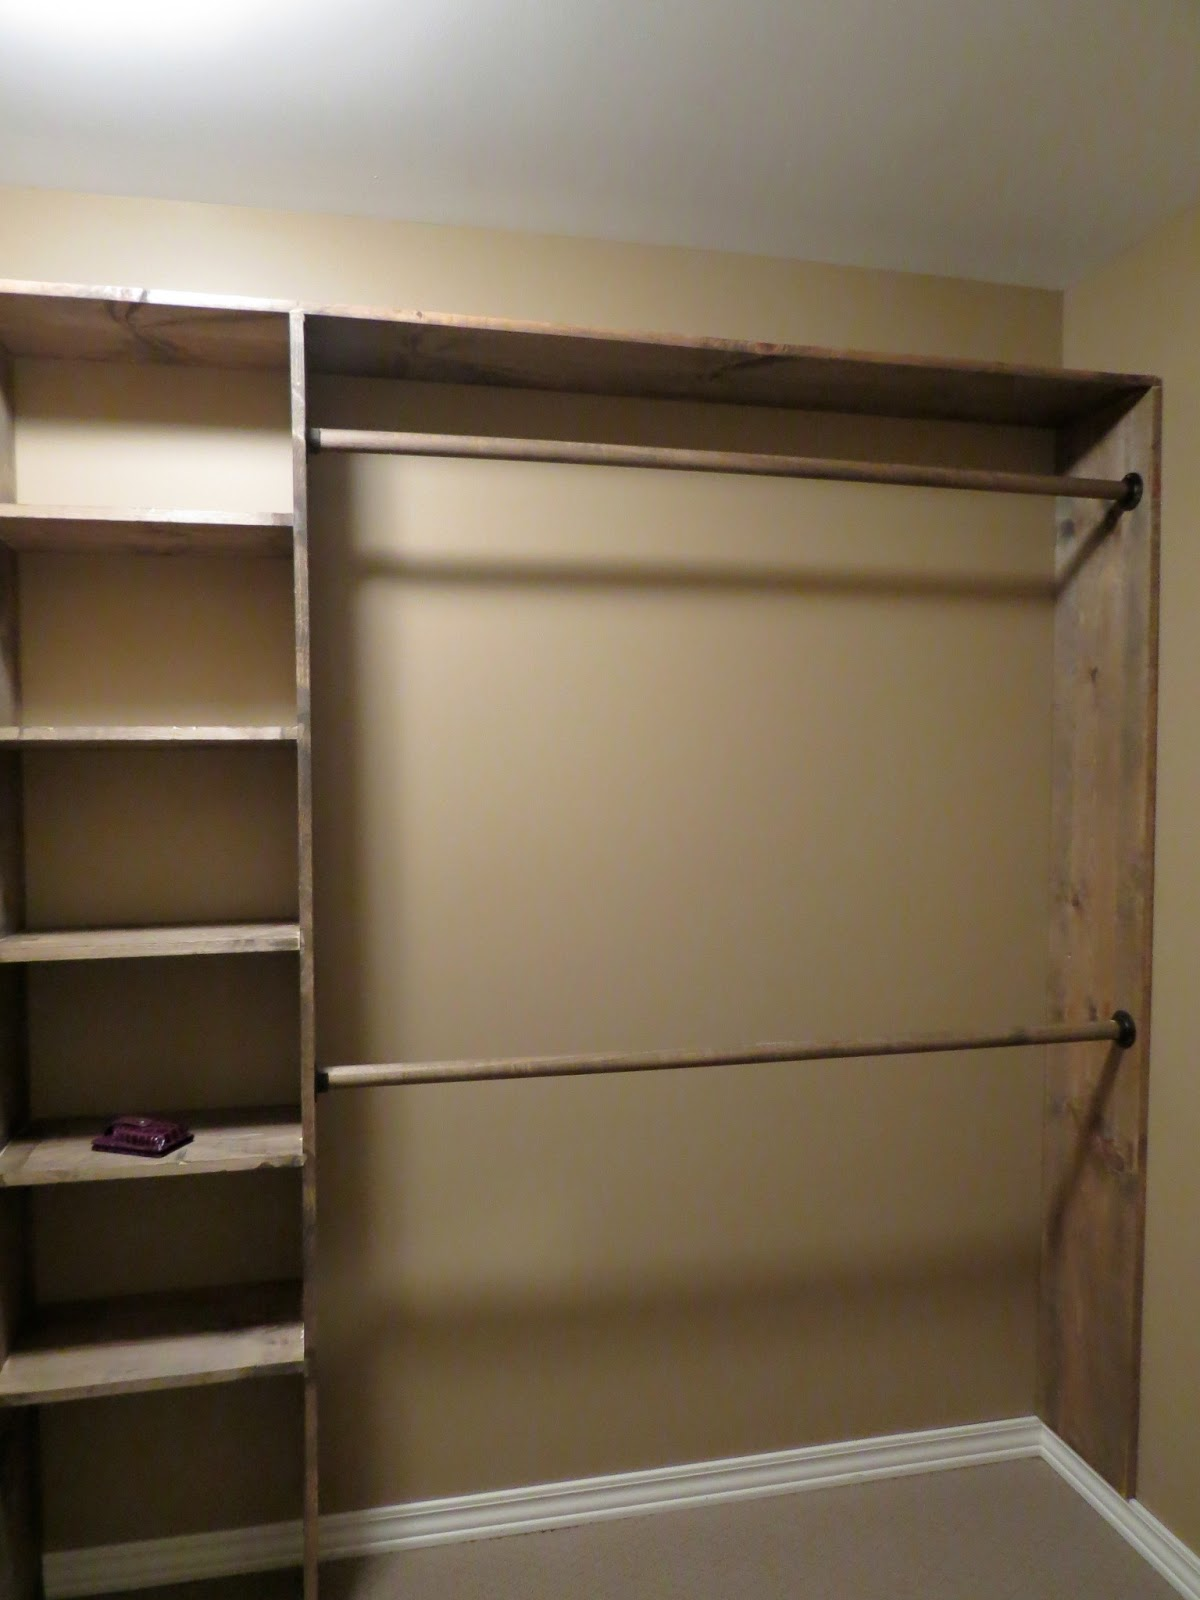 Let 39 s just build a house walk in closets no more living for Simple closet ideas